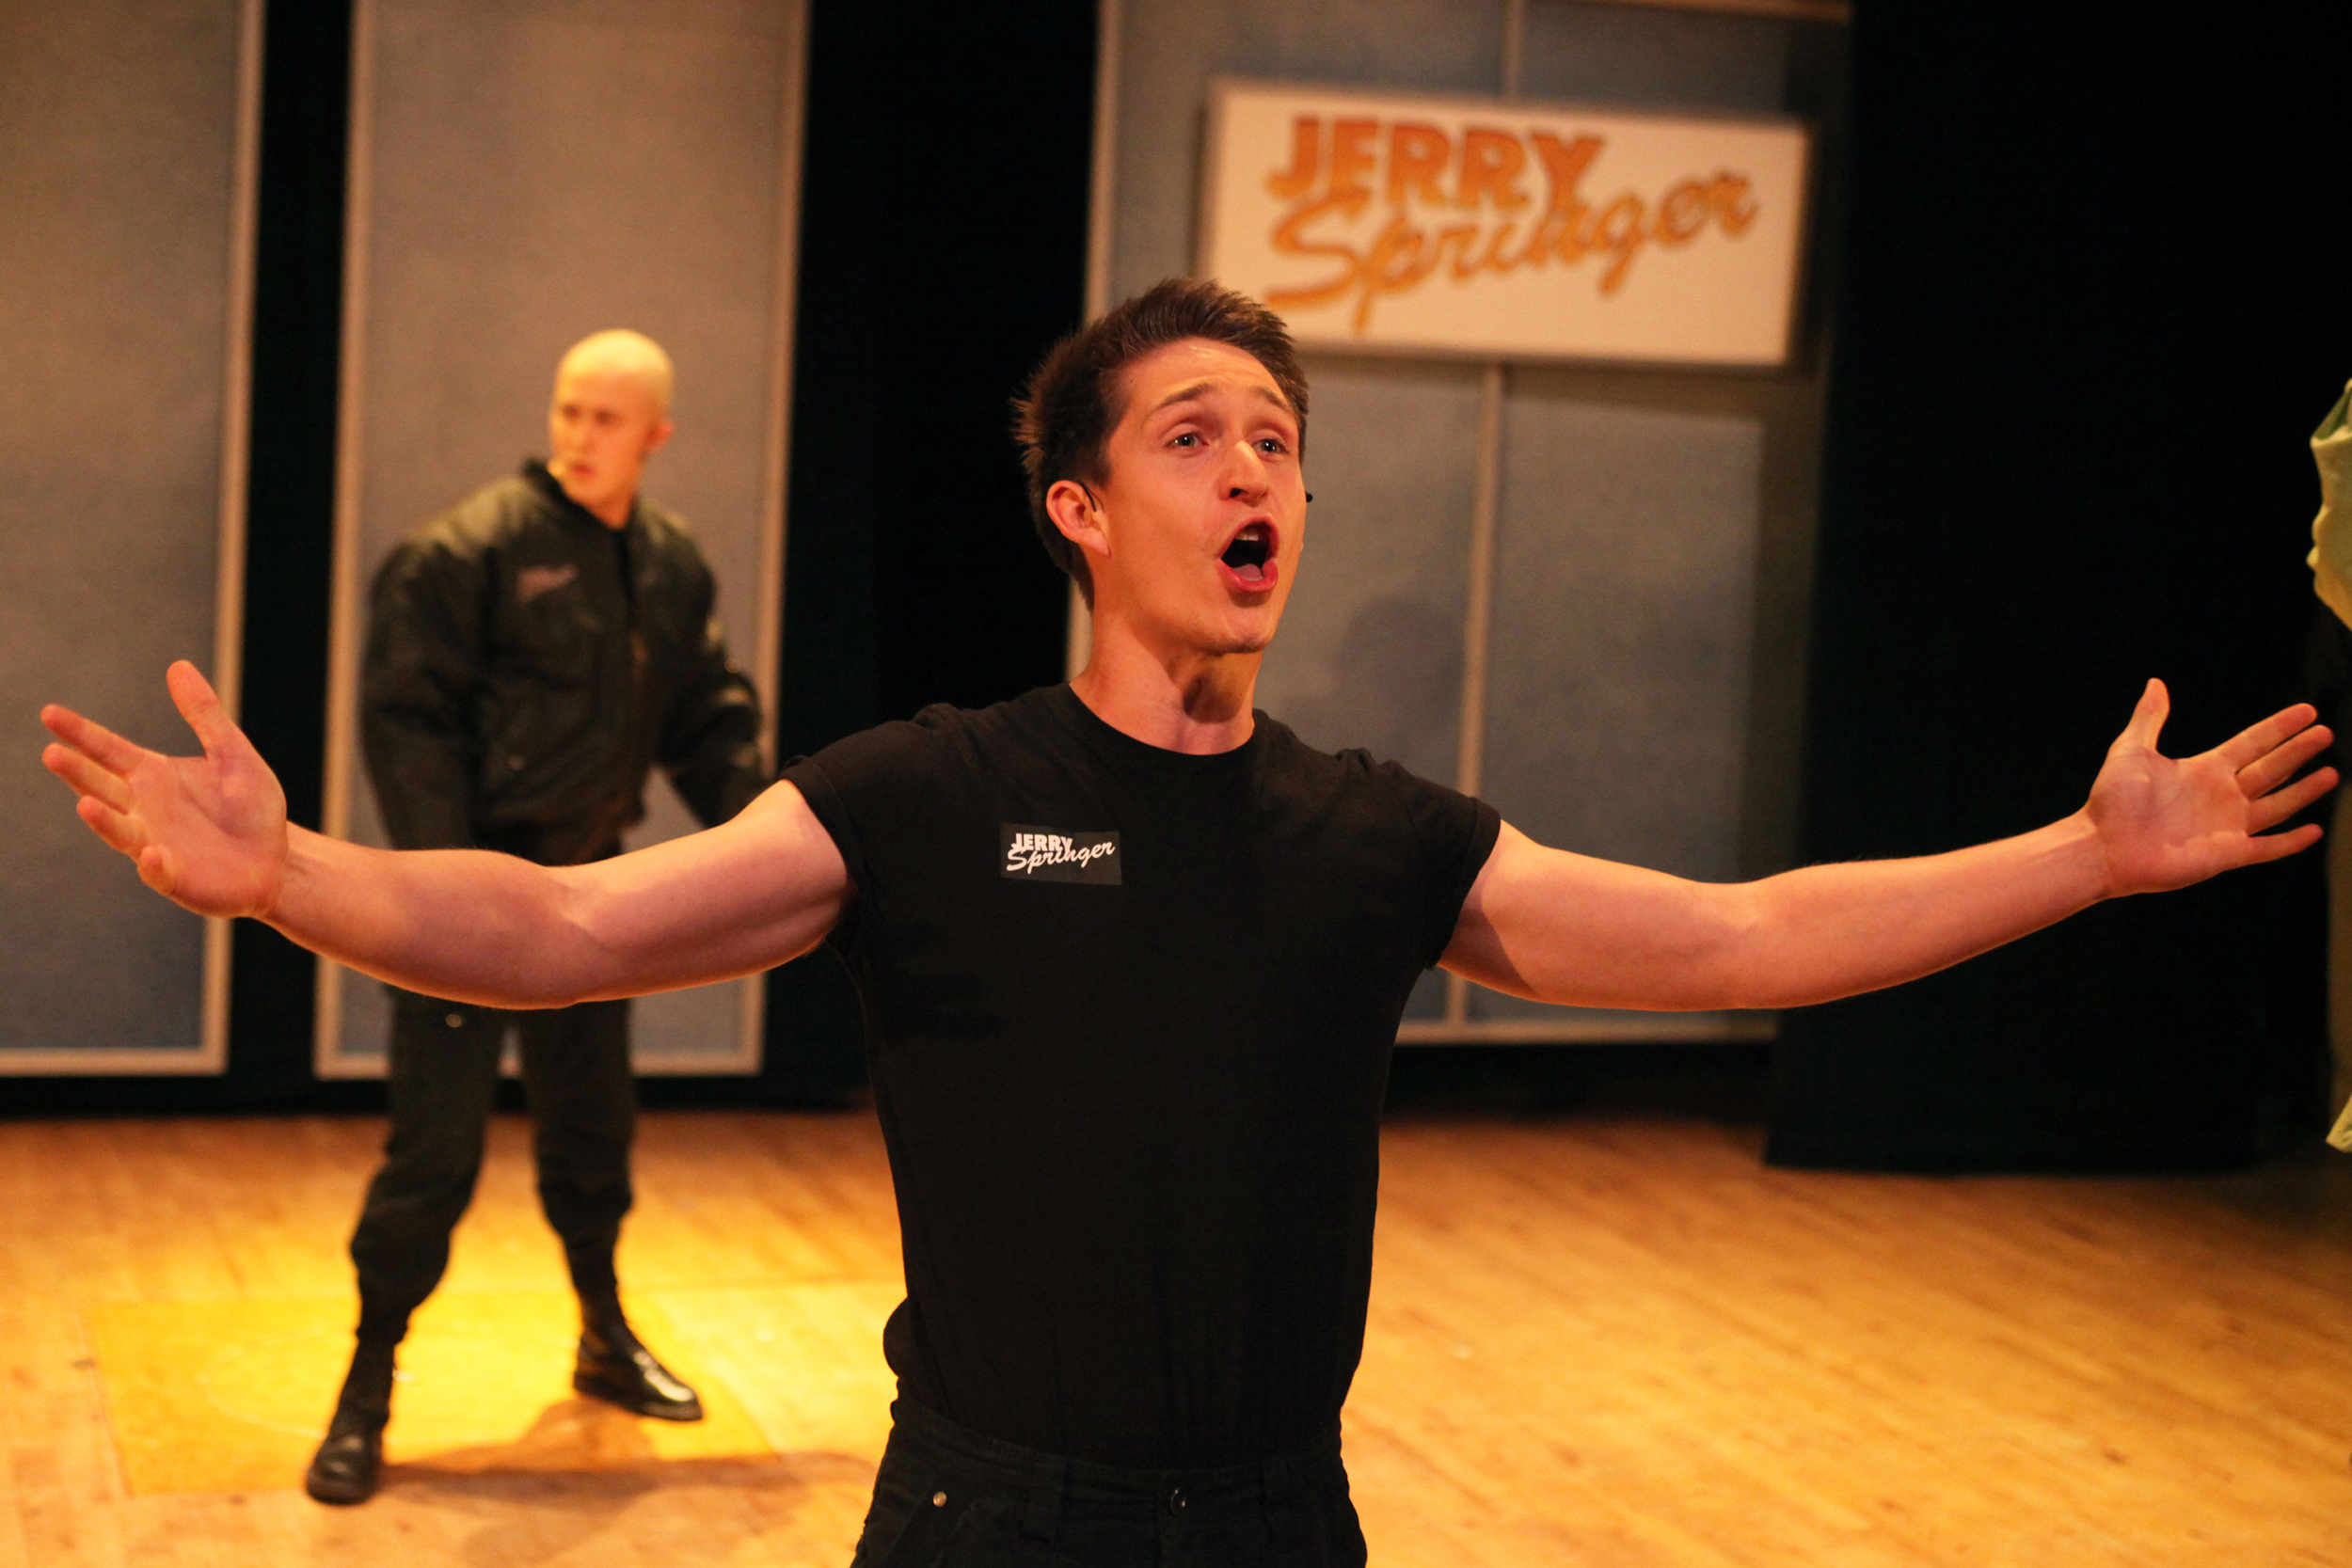 Jerry Spring The Opera